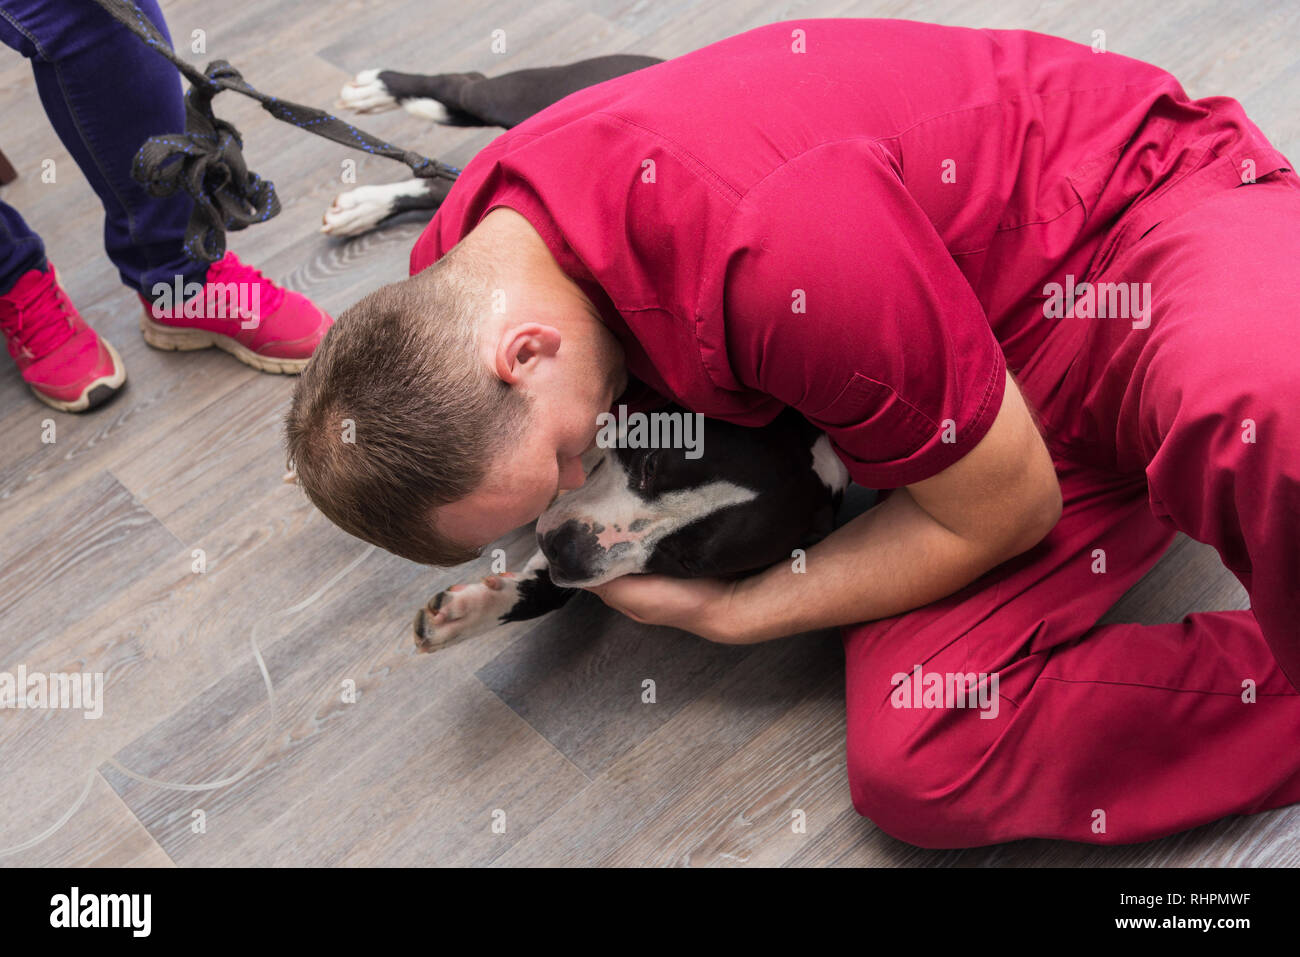 The vet installs a catheter and an IV for a dog at a veterinary clinic. - Stock Image